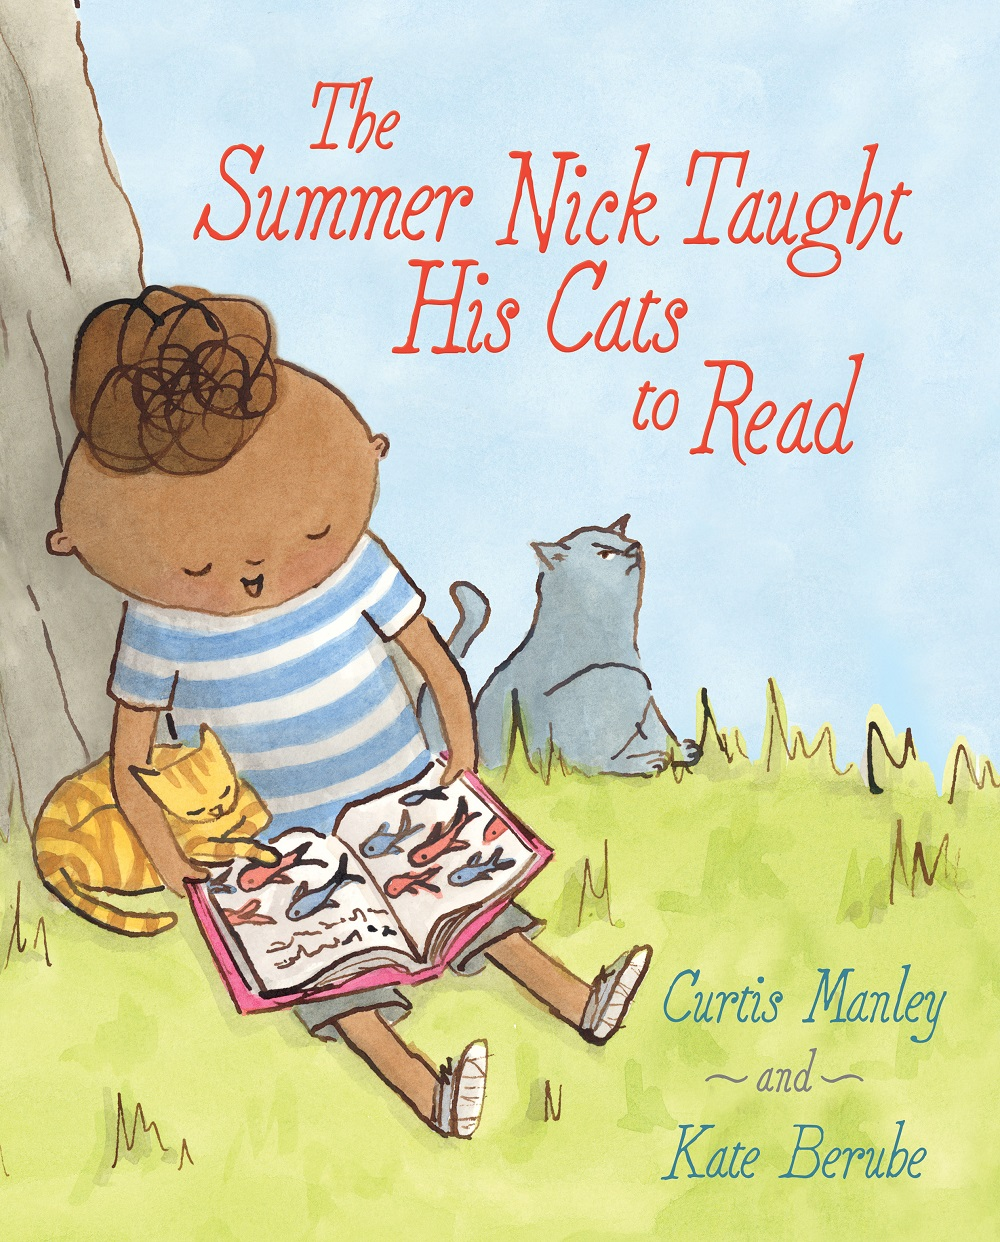 Berube, Kate 2016_07 - THE SUMMER NICK TAUGHT HIS CATS TO READ -  PB - RLM LK.jpg